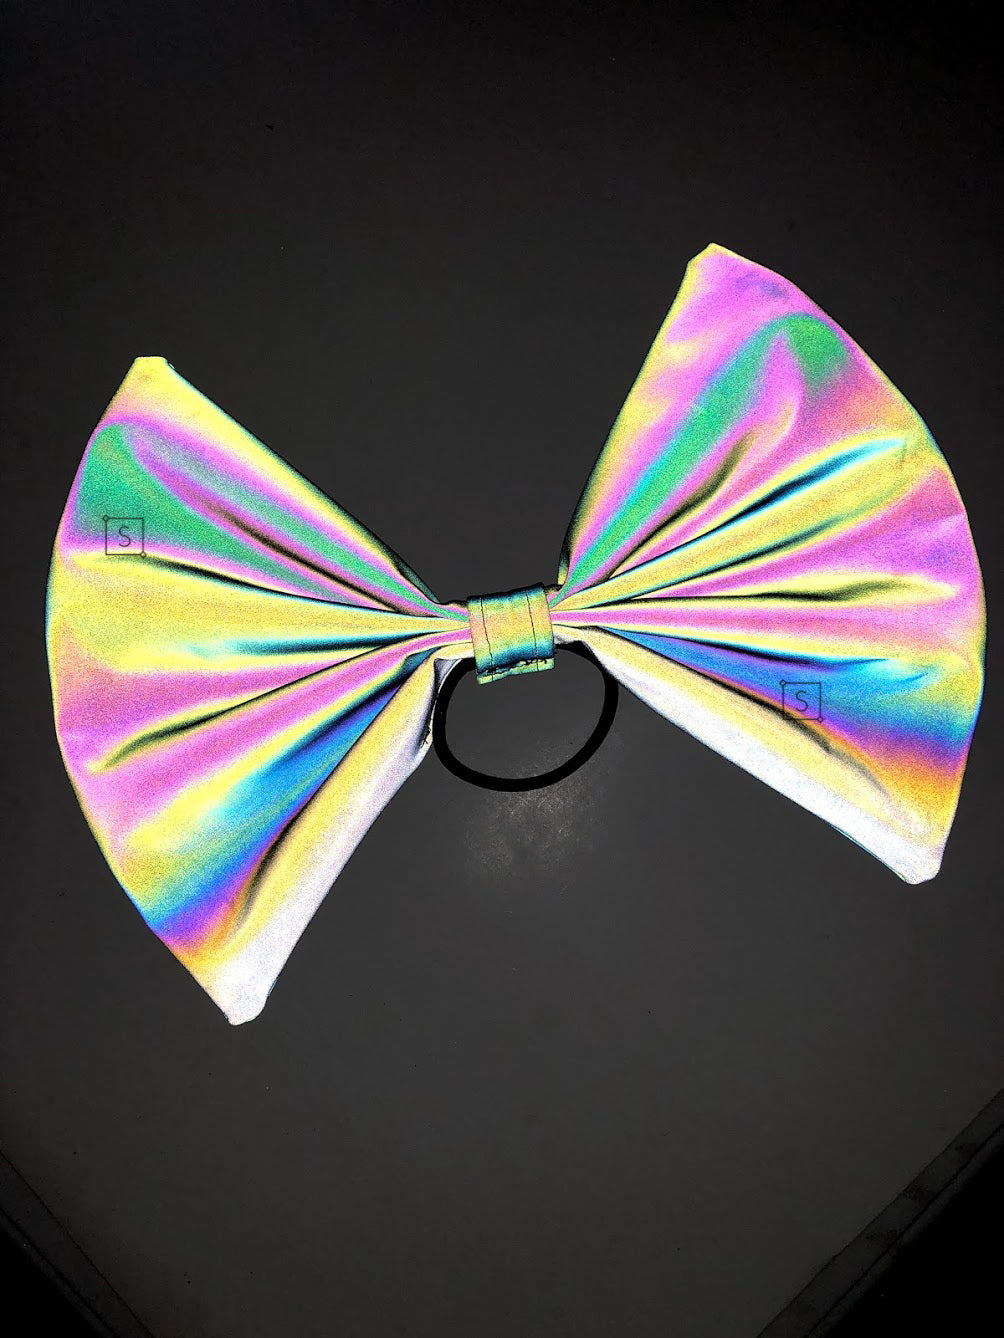 XL Reflective Hair Bow - Stinnys